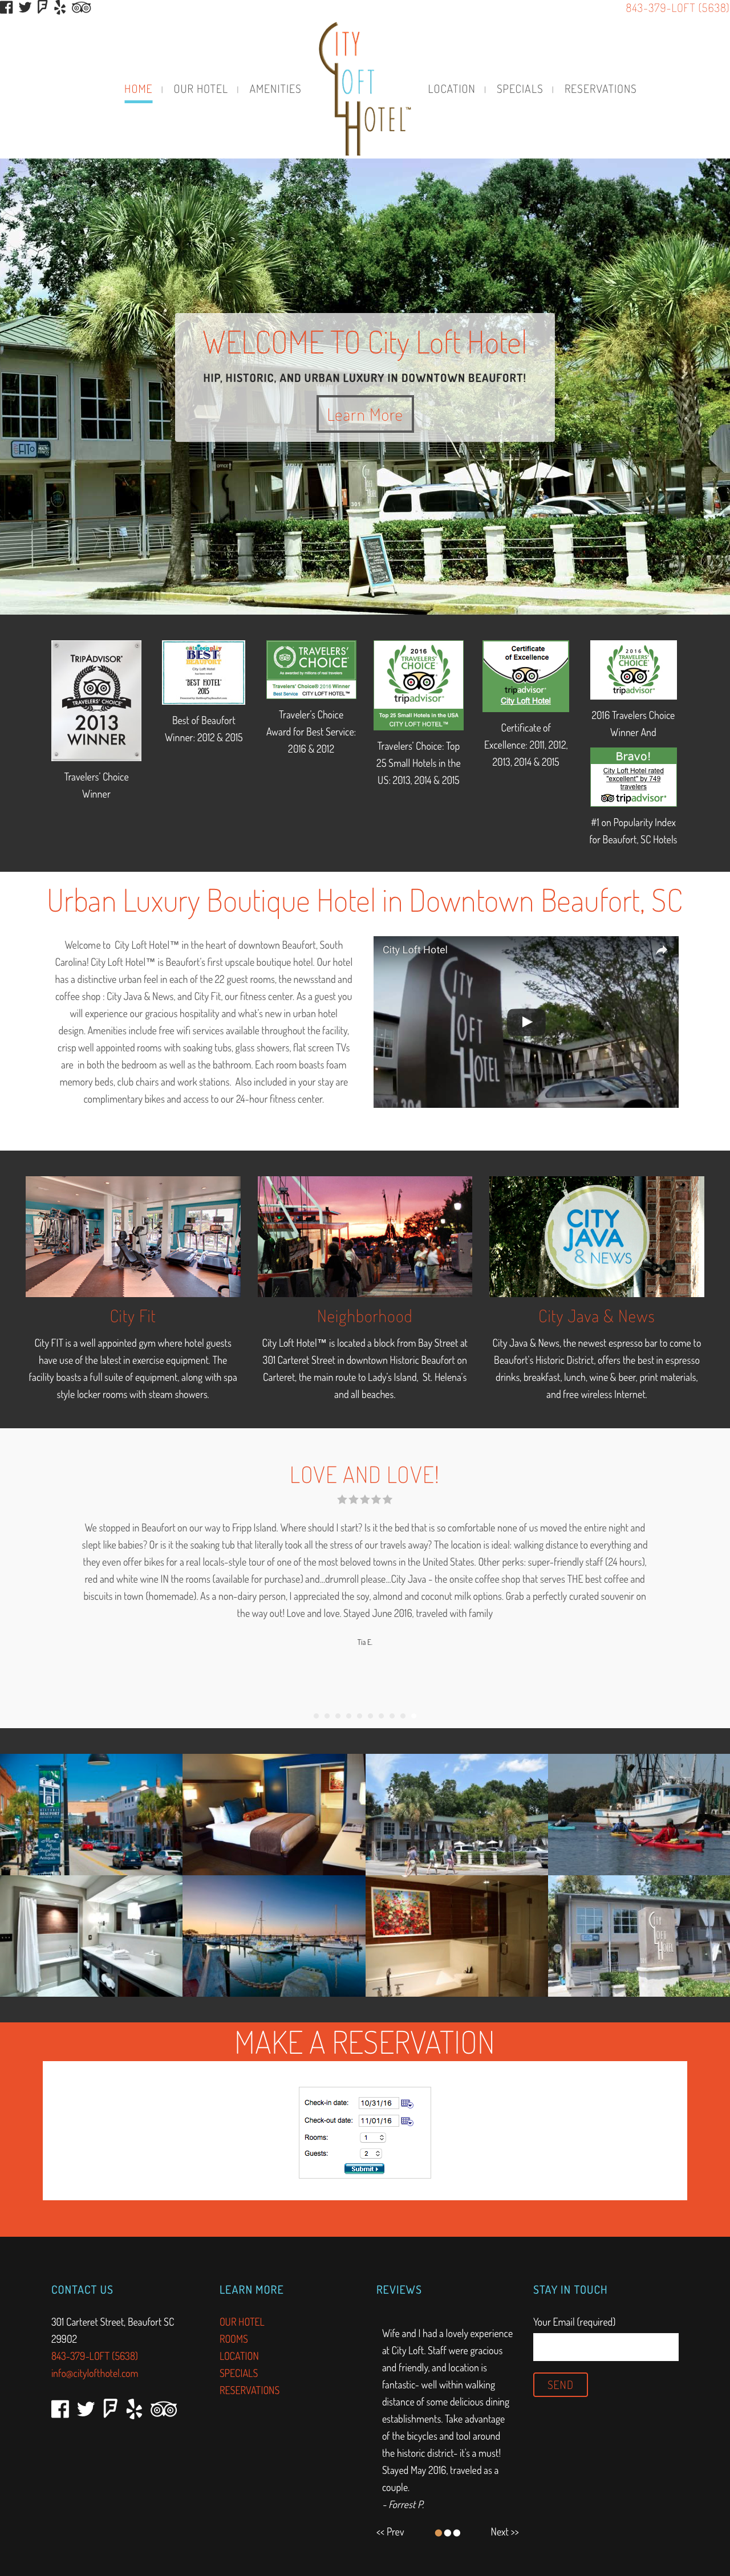 CITY LOFT HOTEL in the Historic District - Beaufort, SC   PickleJuice Productions